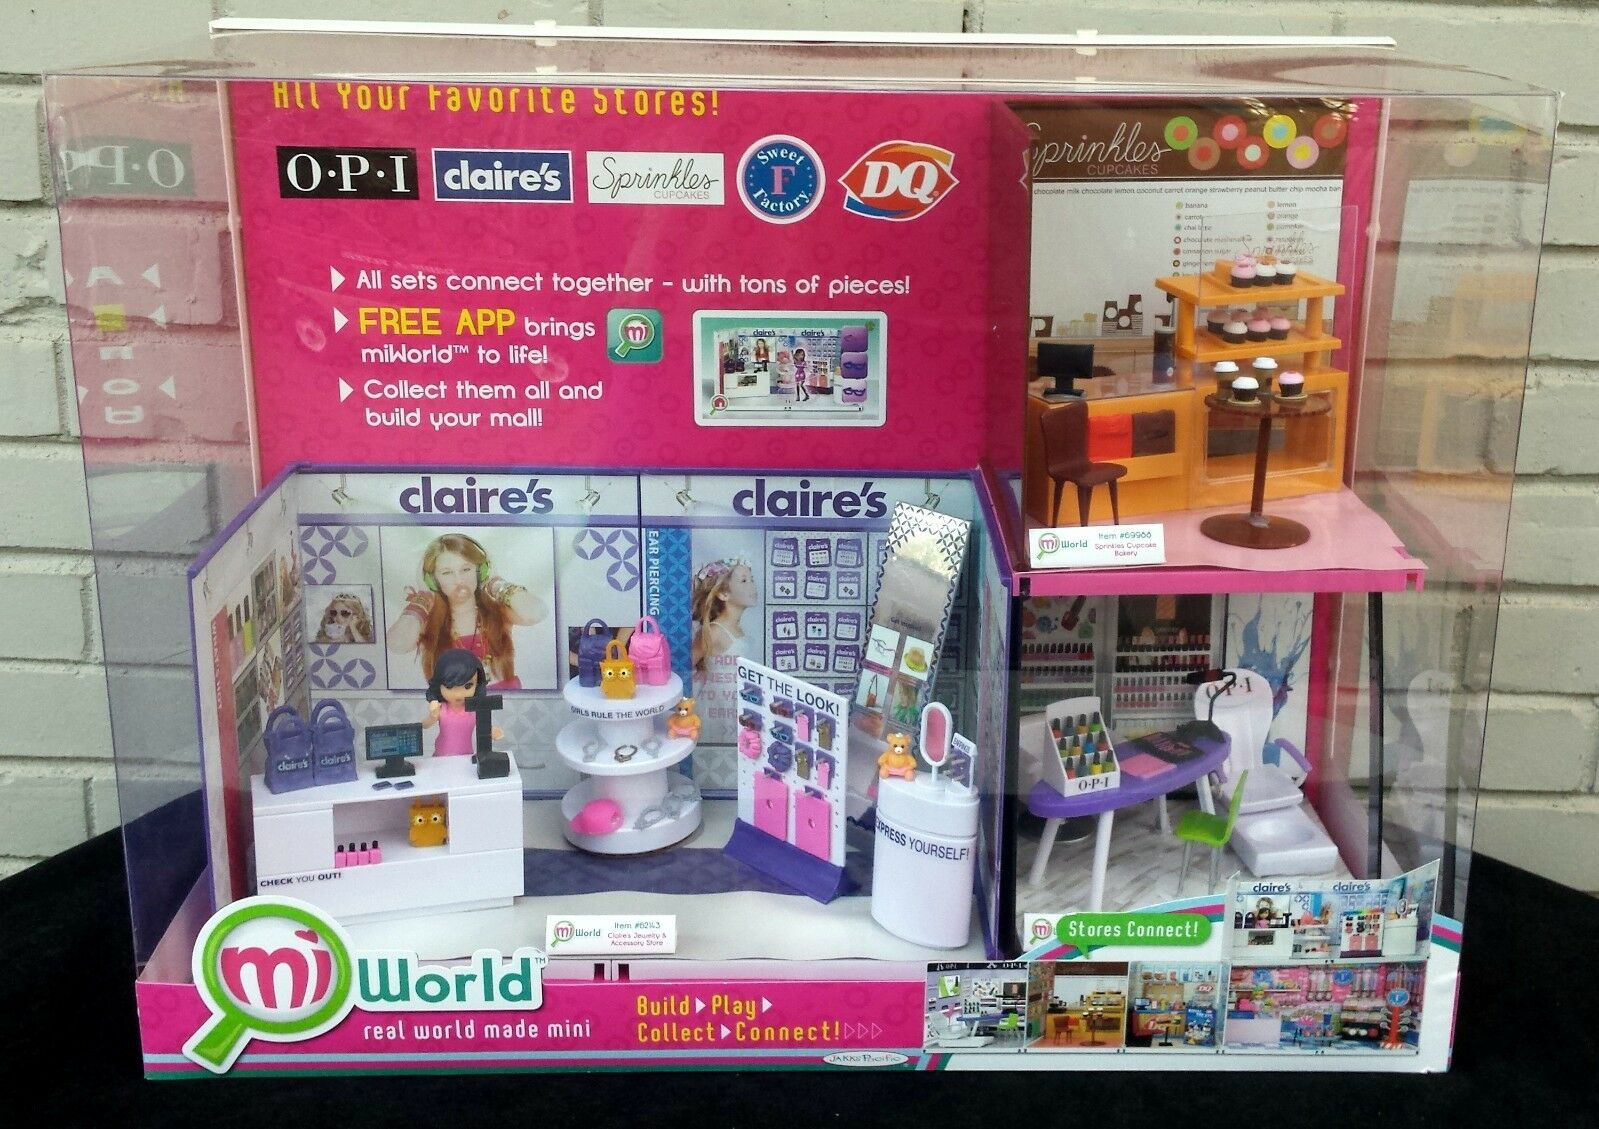 Store Display - Mi World Mini World Build Play Collect Connect Claire's OPI